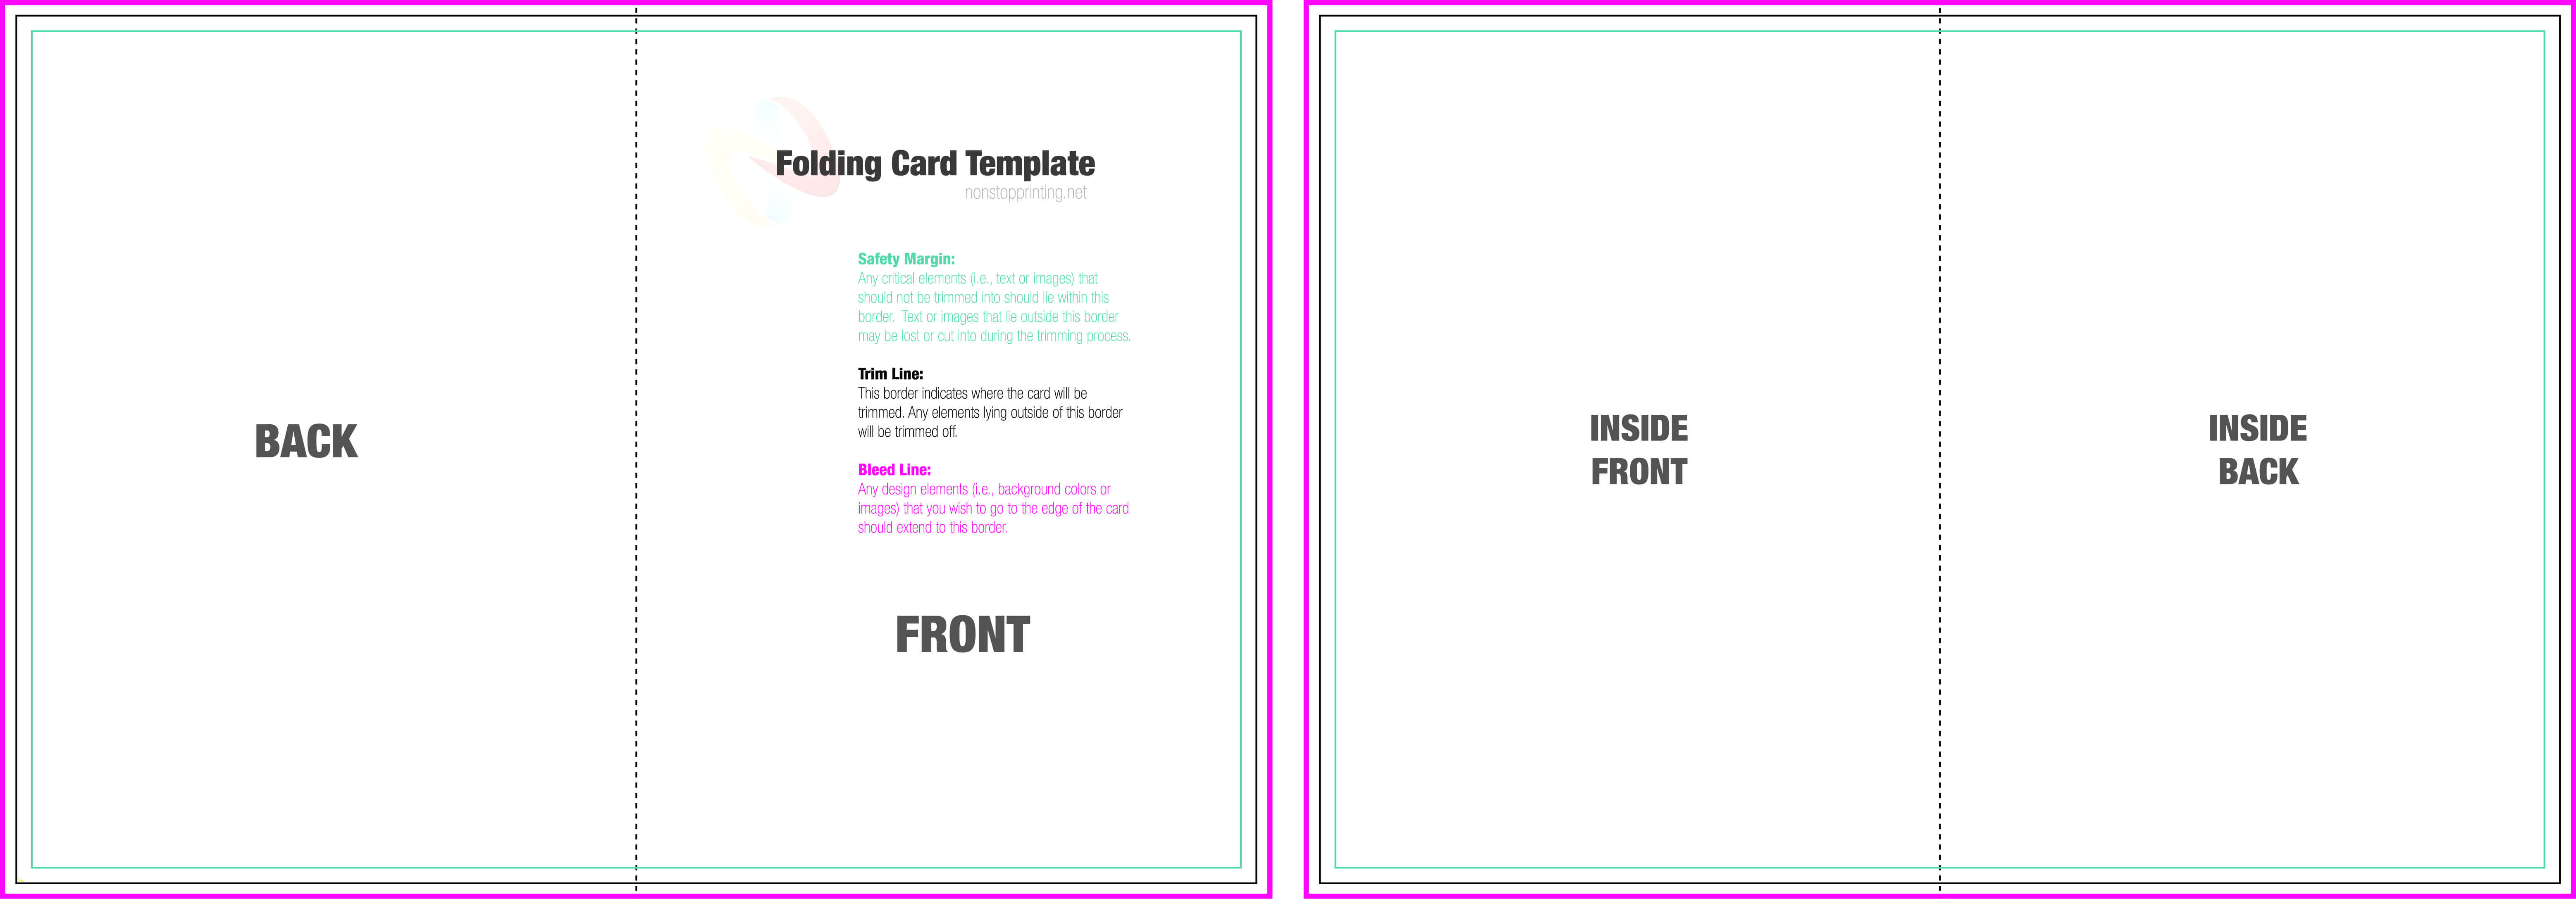 004 Blank Quarter Fold Card Template Free Ideas Greeting intended for Quarter Fold Birthday Card Template